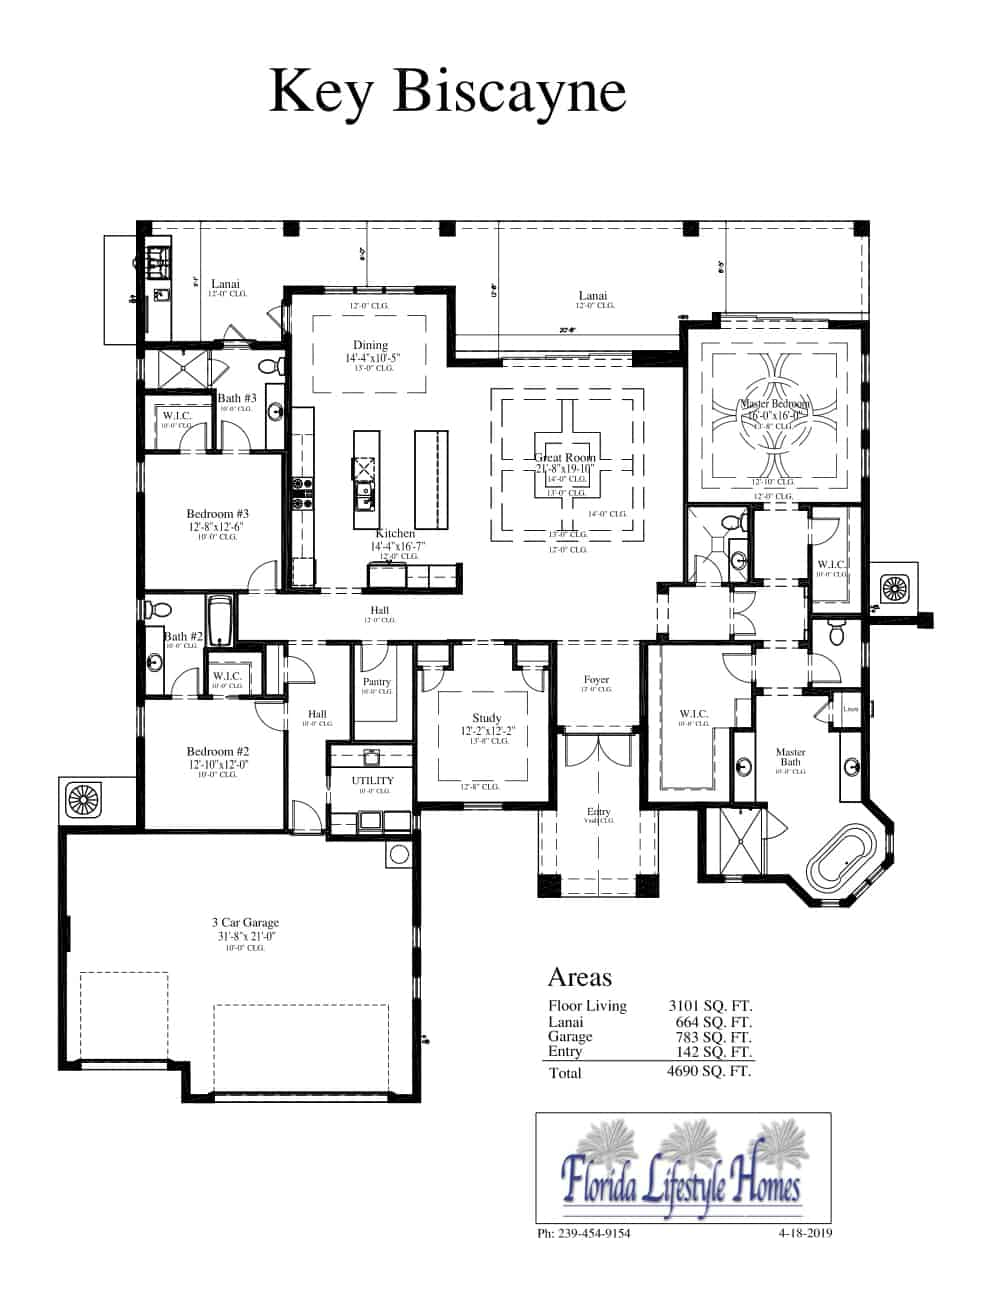 The Key Biscayne - Available Home - 1